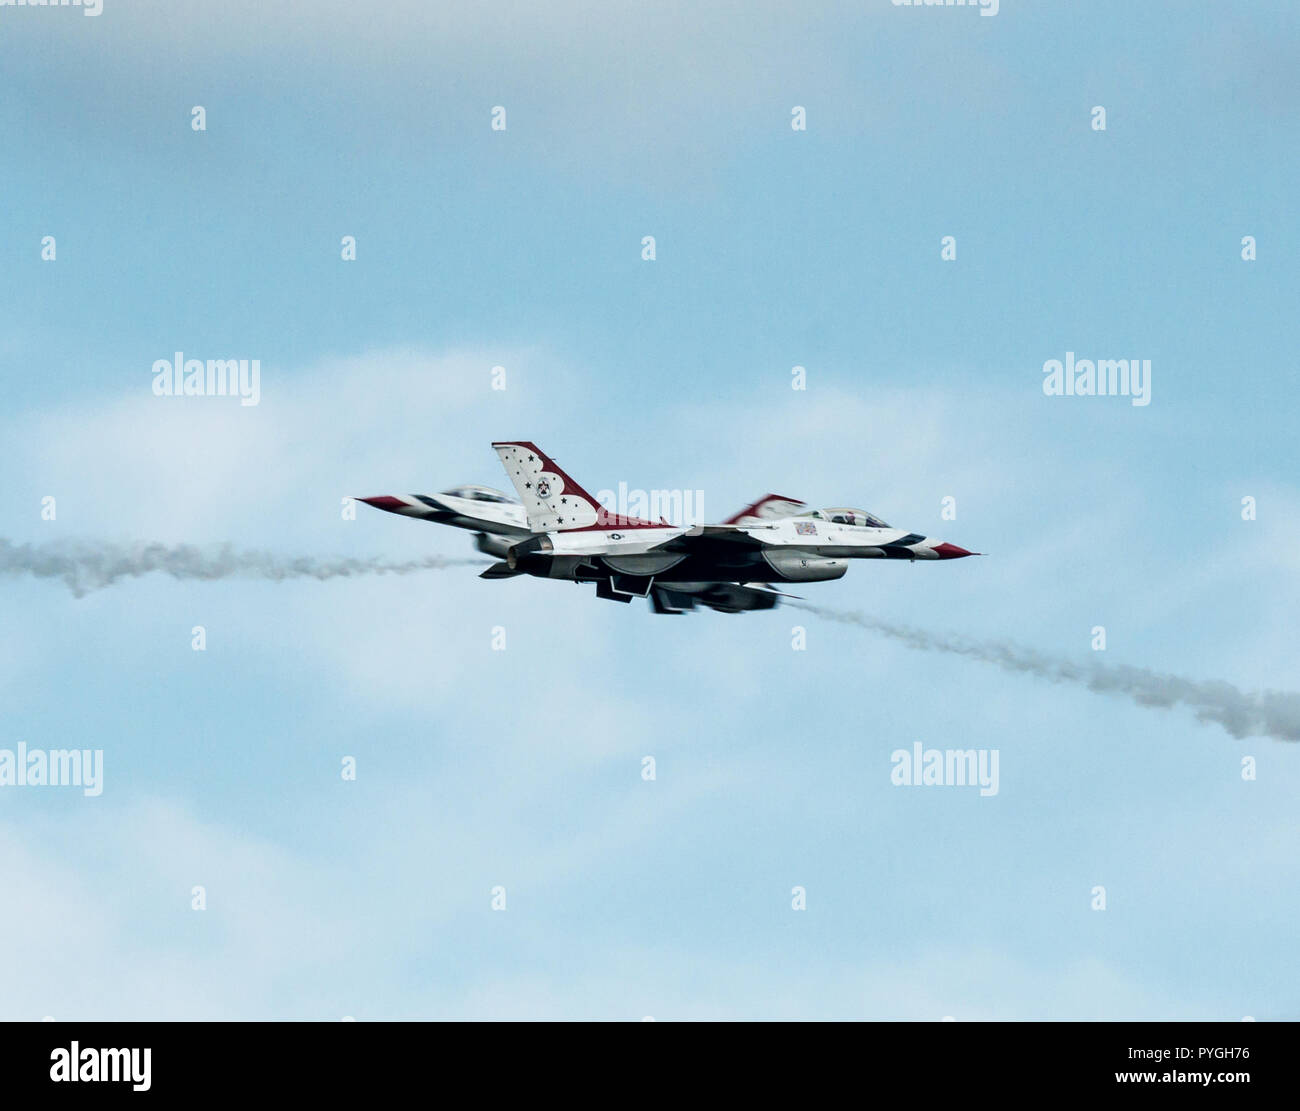 US Airforce Thunderbirds performing a Opposing Head-On pass at the Westfield International Airshow - Stock Image